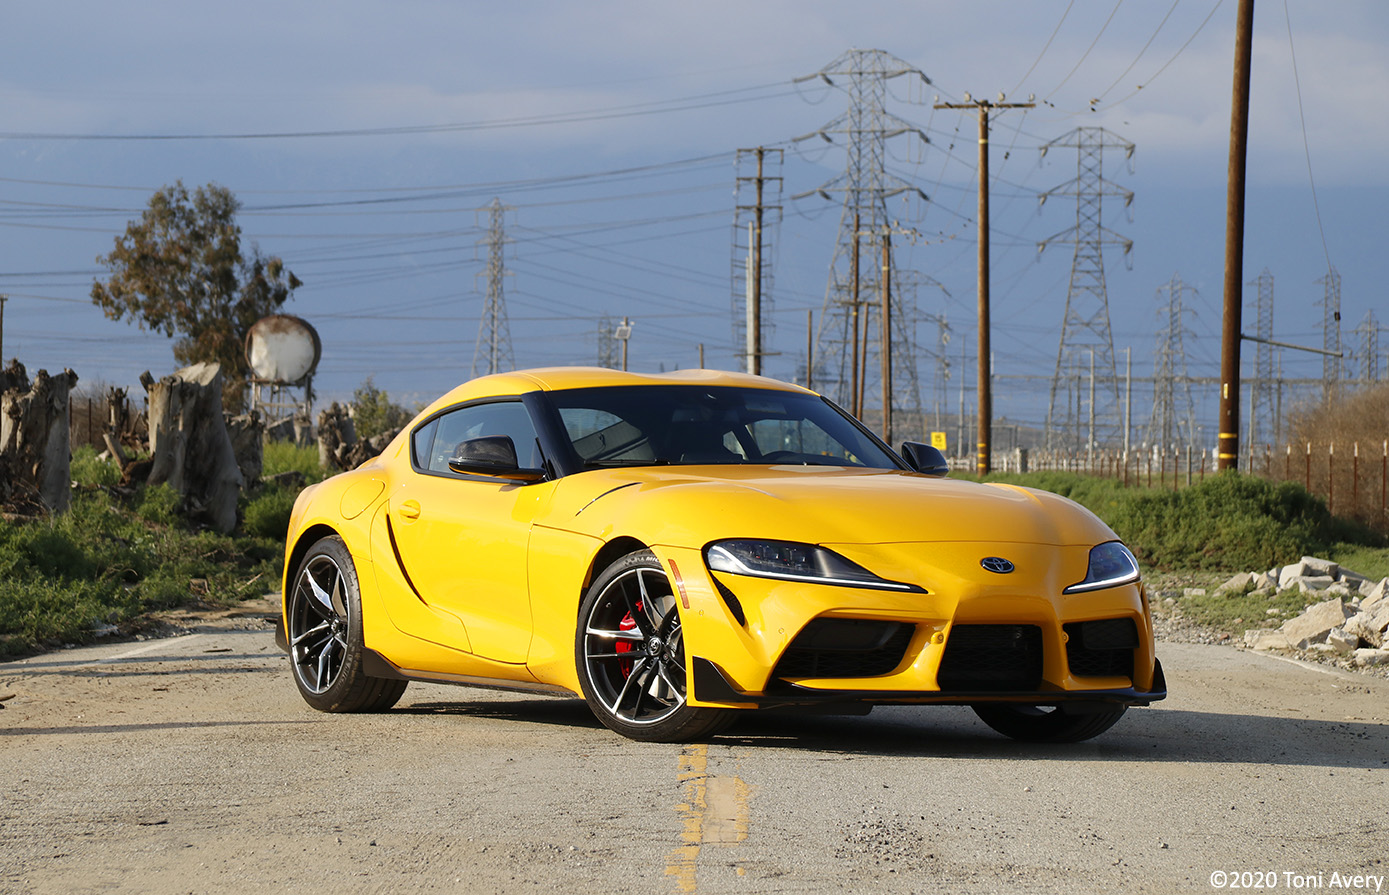 2020 Toyota Supra GR Review (w/ video)